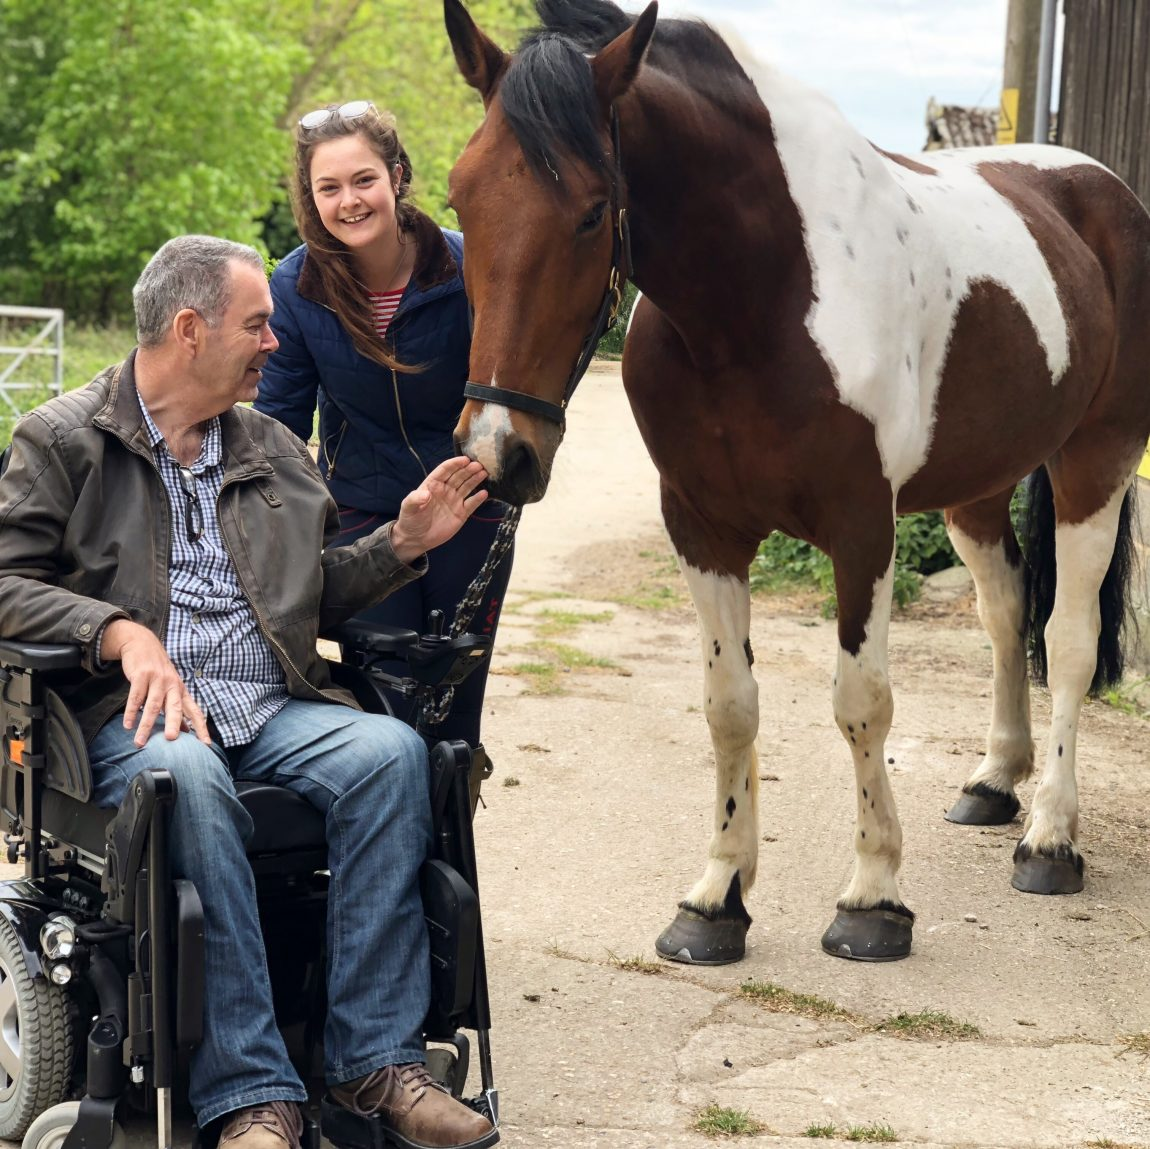 hollie-ella father disabled and horse